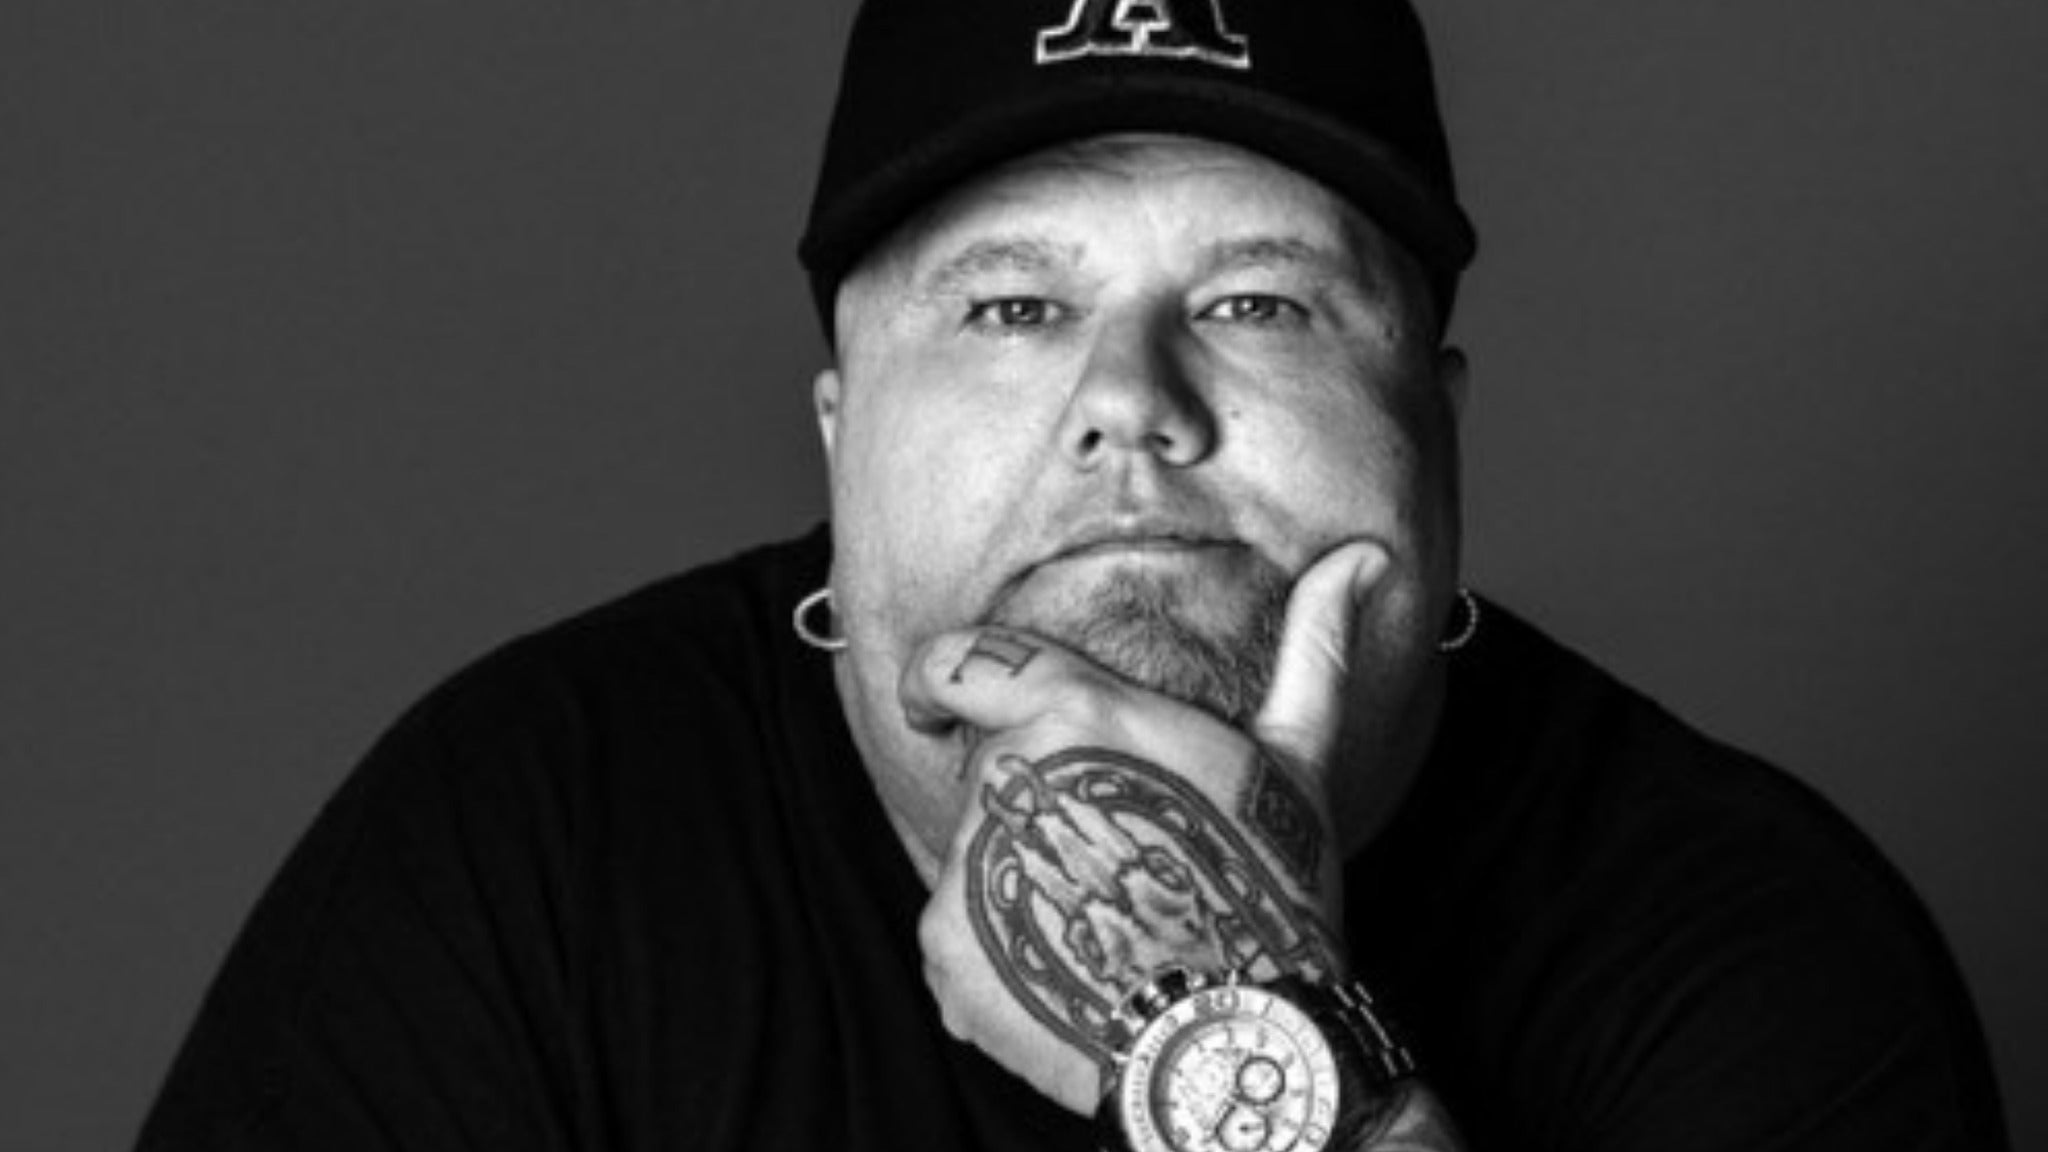 Sactown Comedy Jam Featuring Local Radio Personality Arnie States